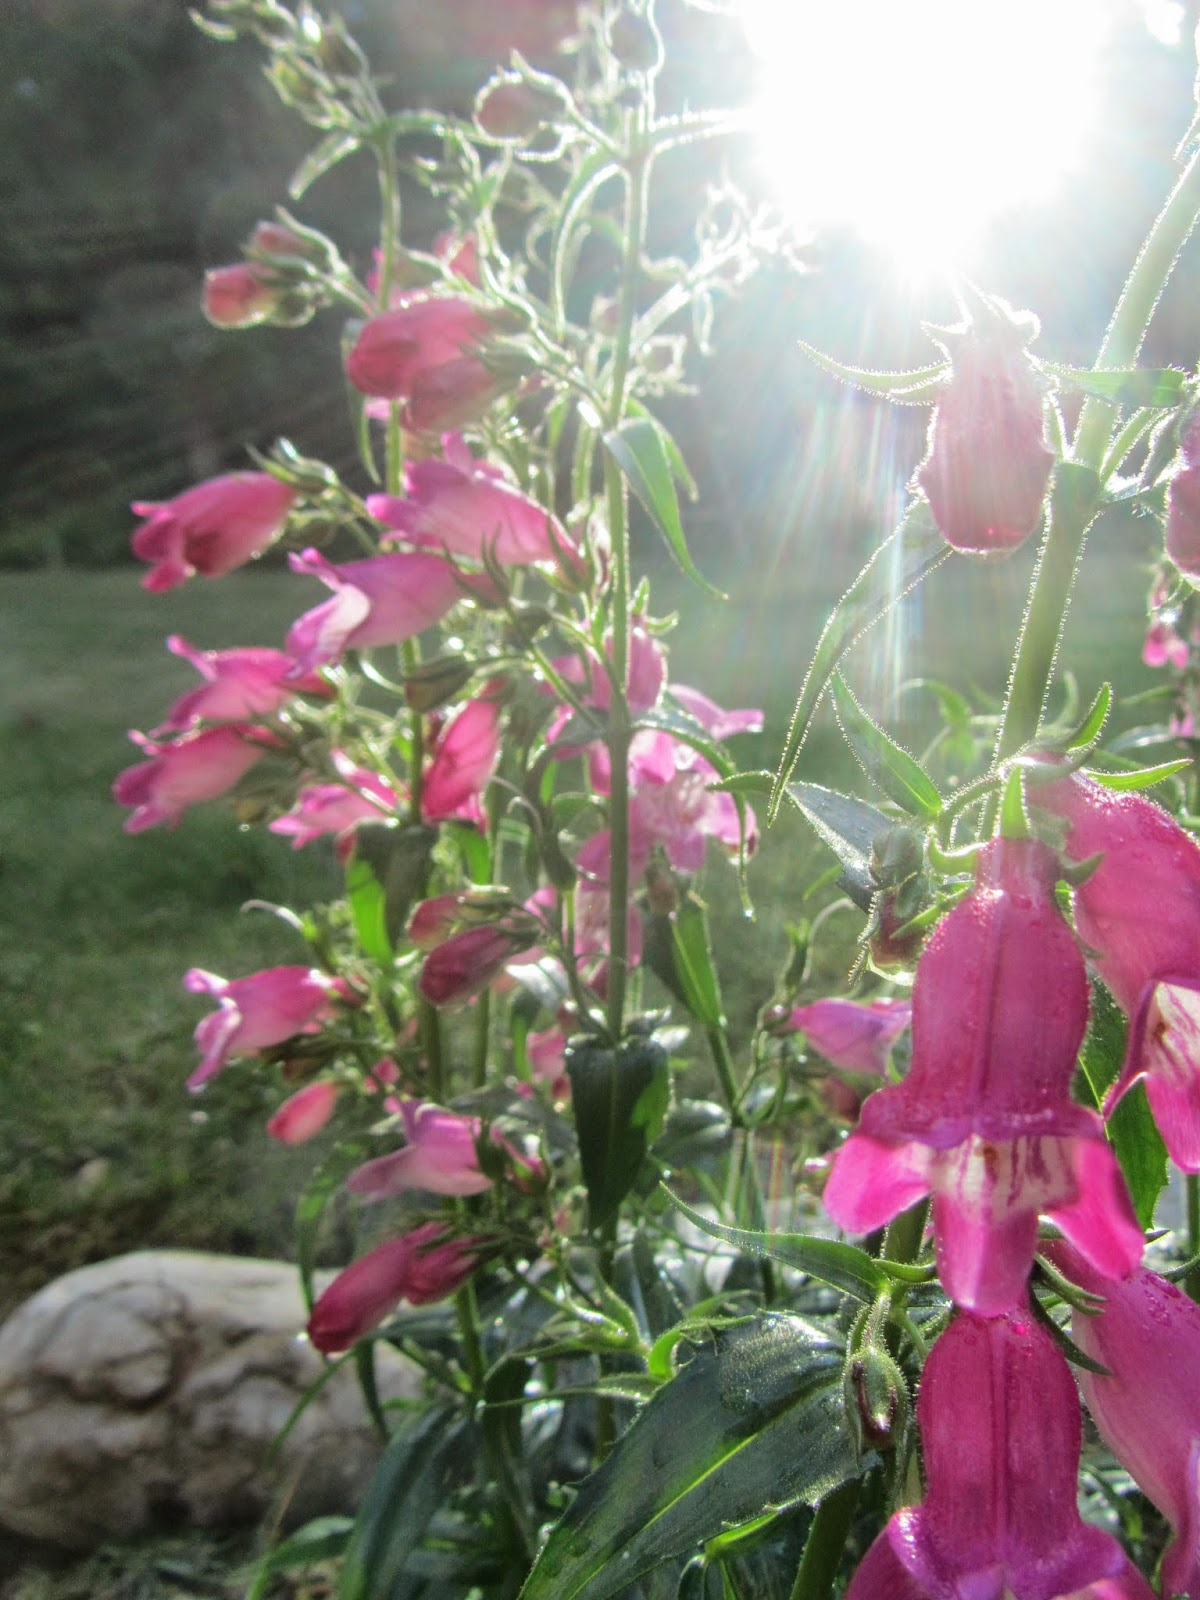 Red Rocks Penstemon blooming in my North Idaho garden